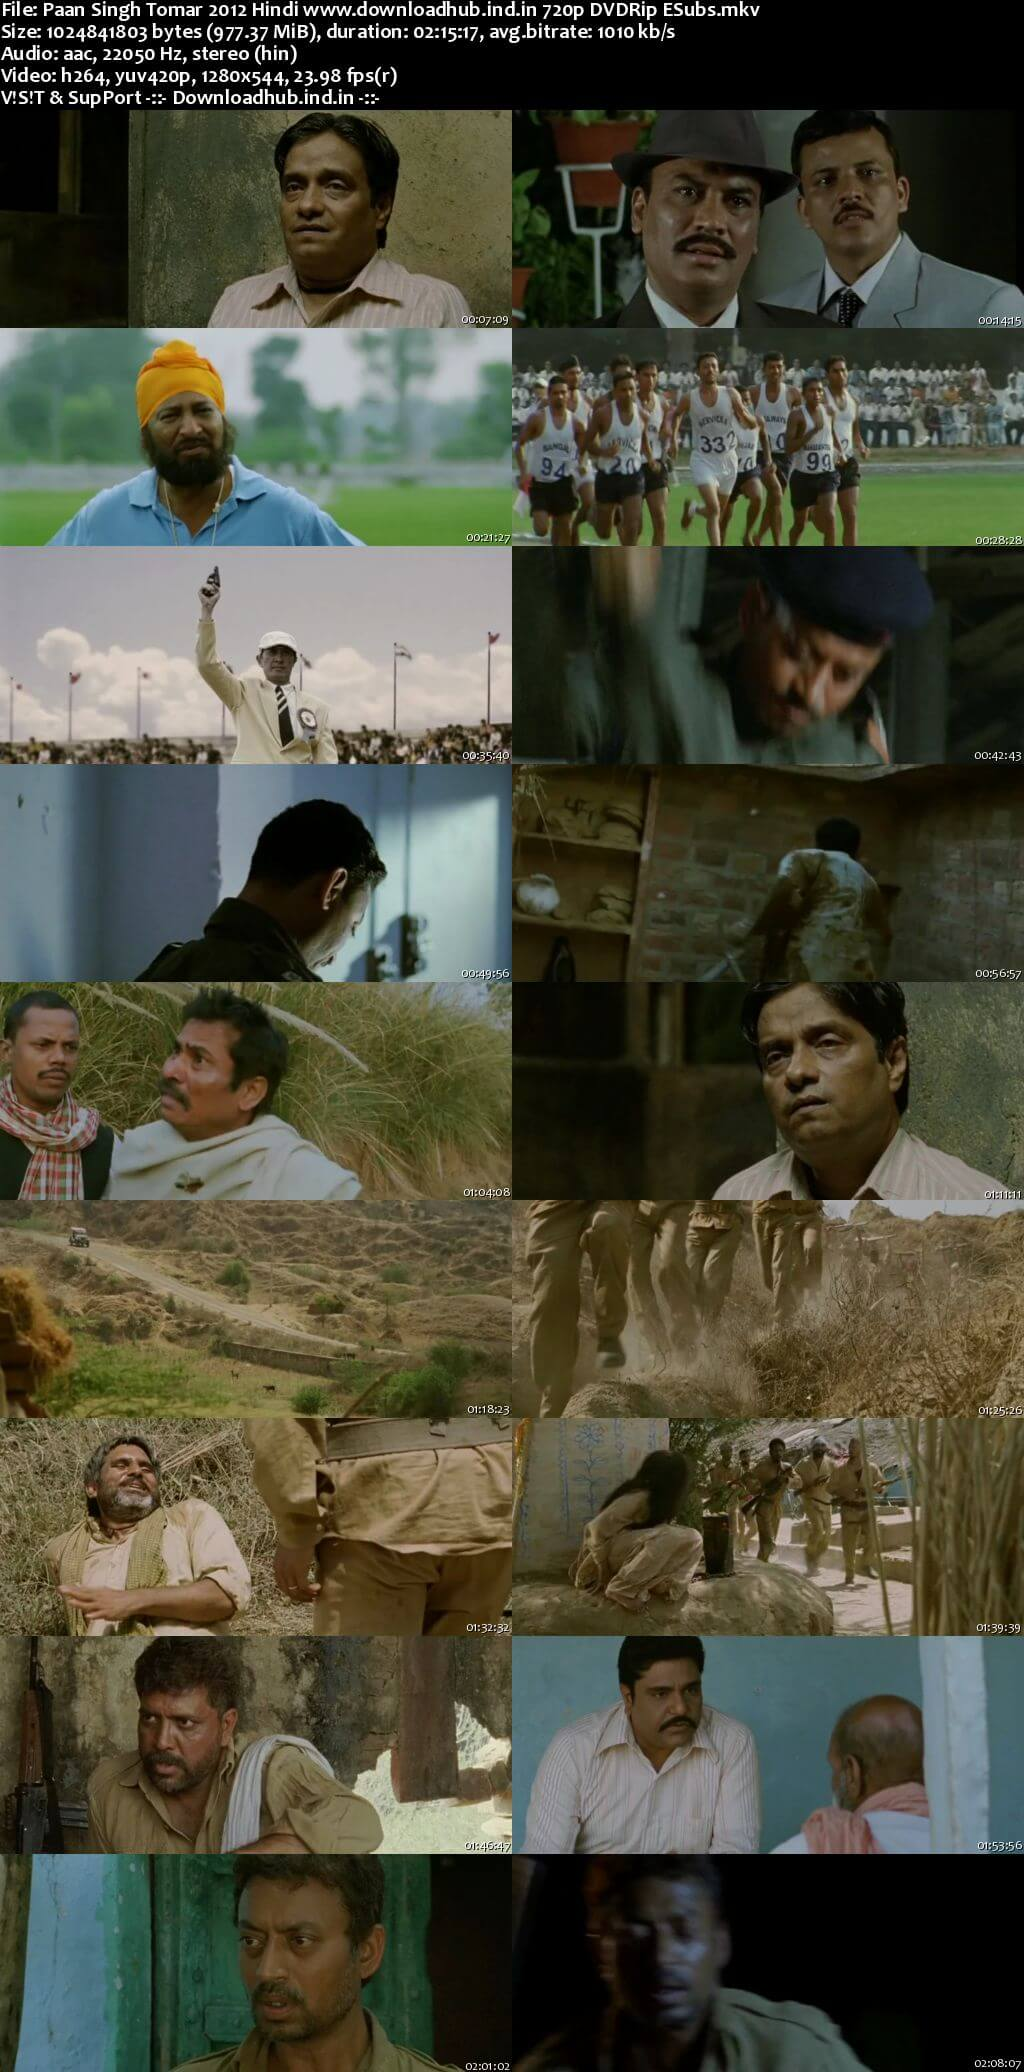 Paan Singh Tomar 2012 Hindi 720p DVDRip ESubs